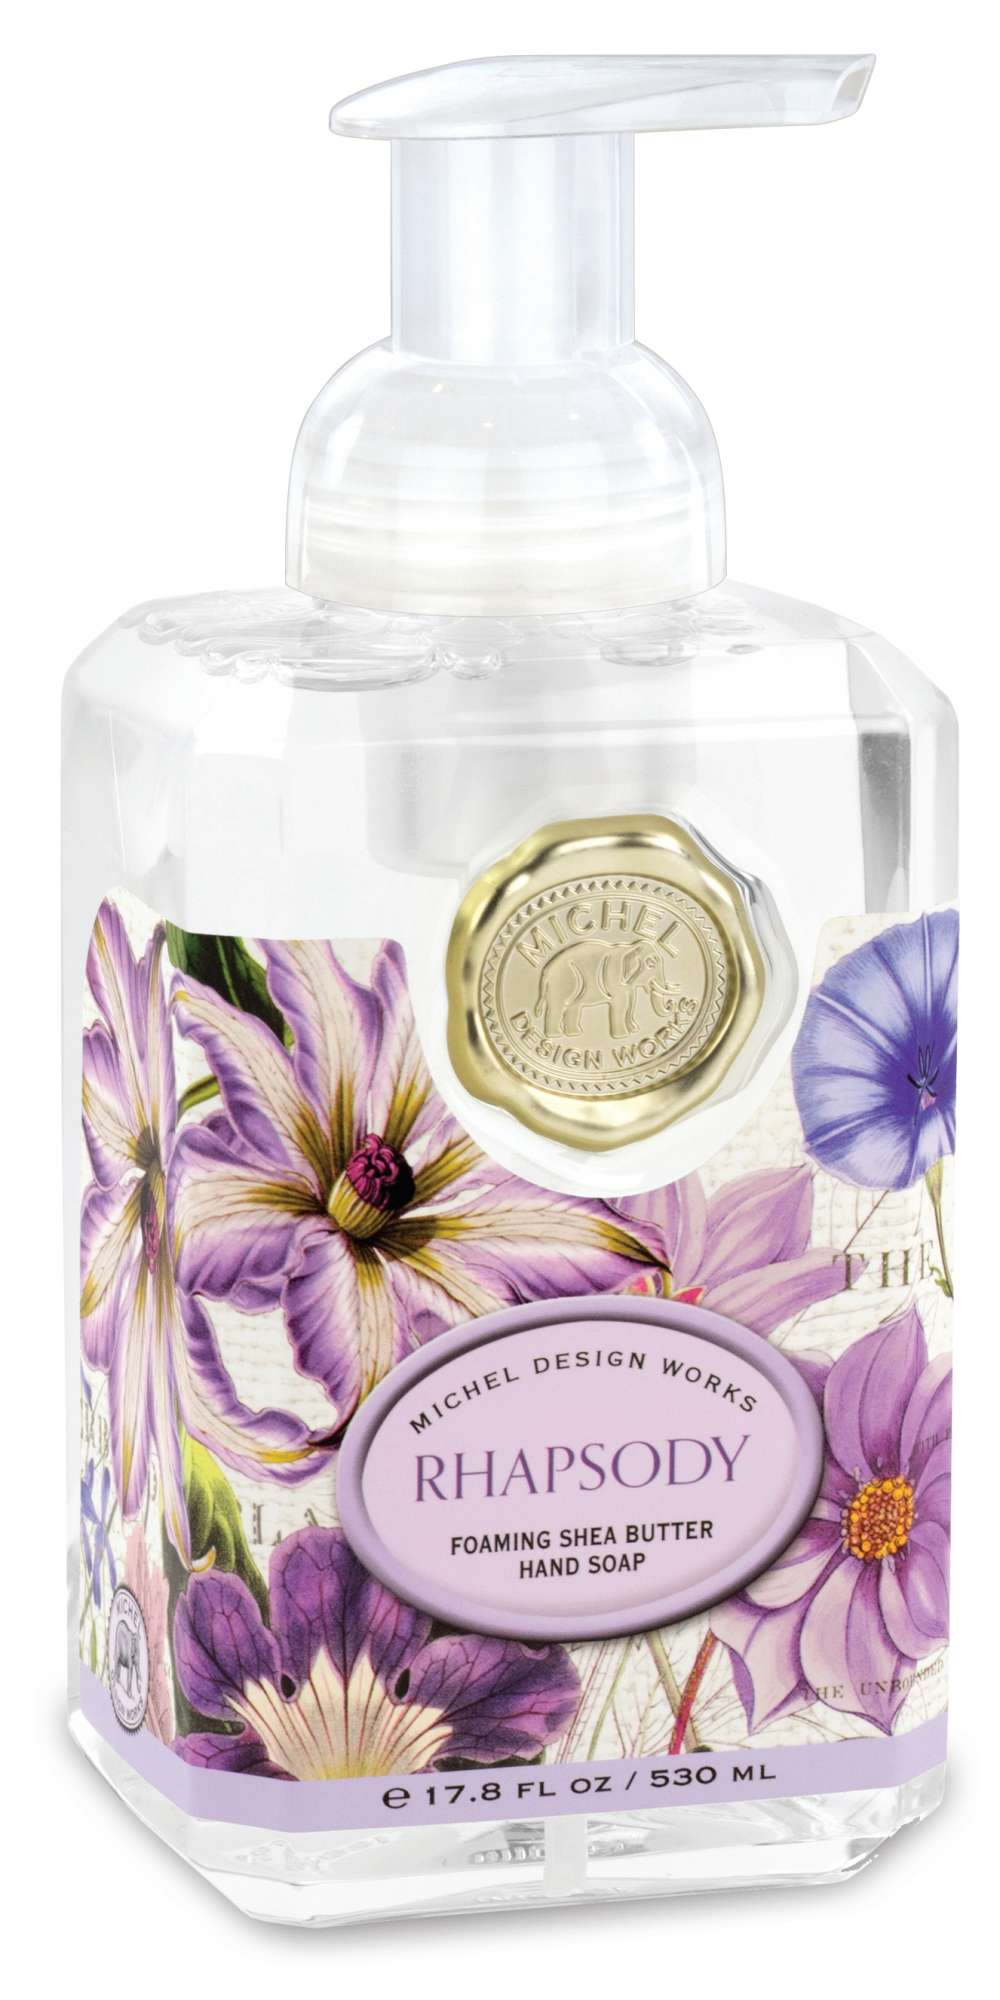 Rhapsody Foaming Hand Soap